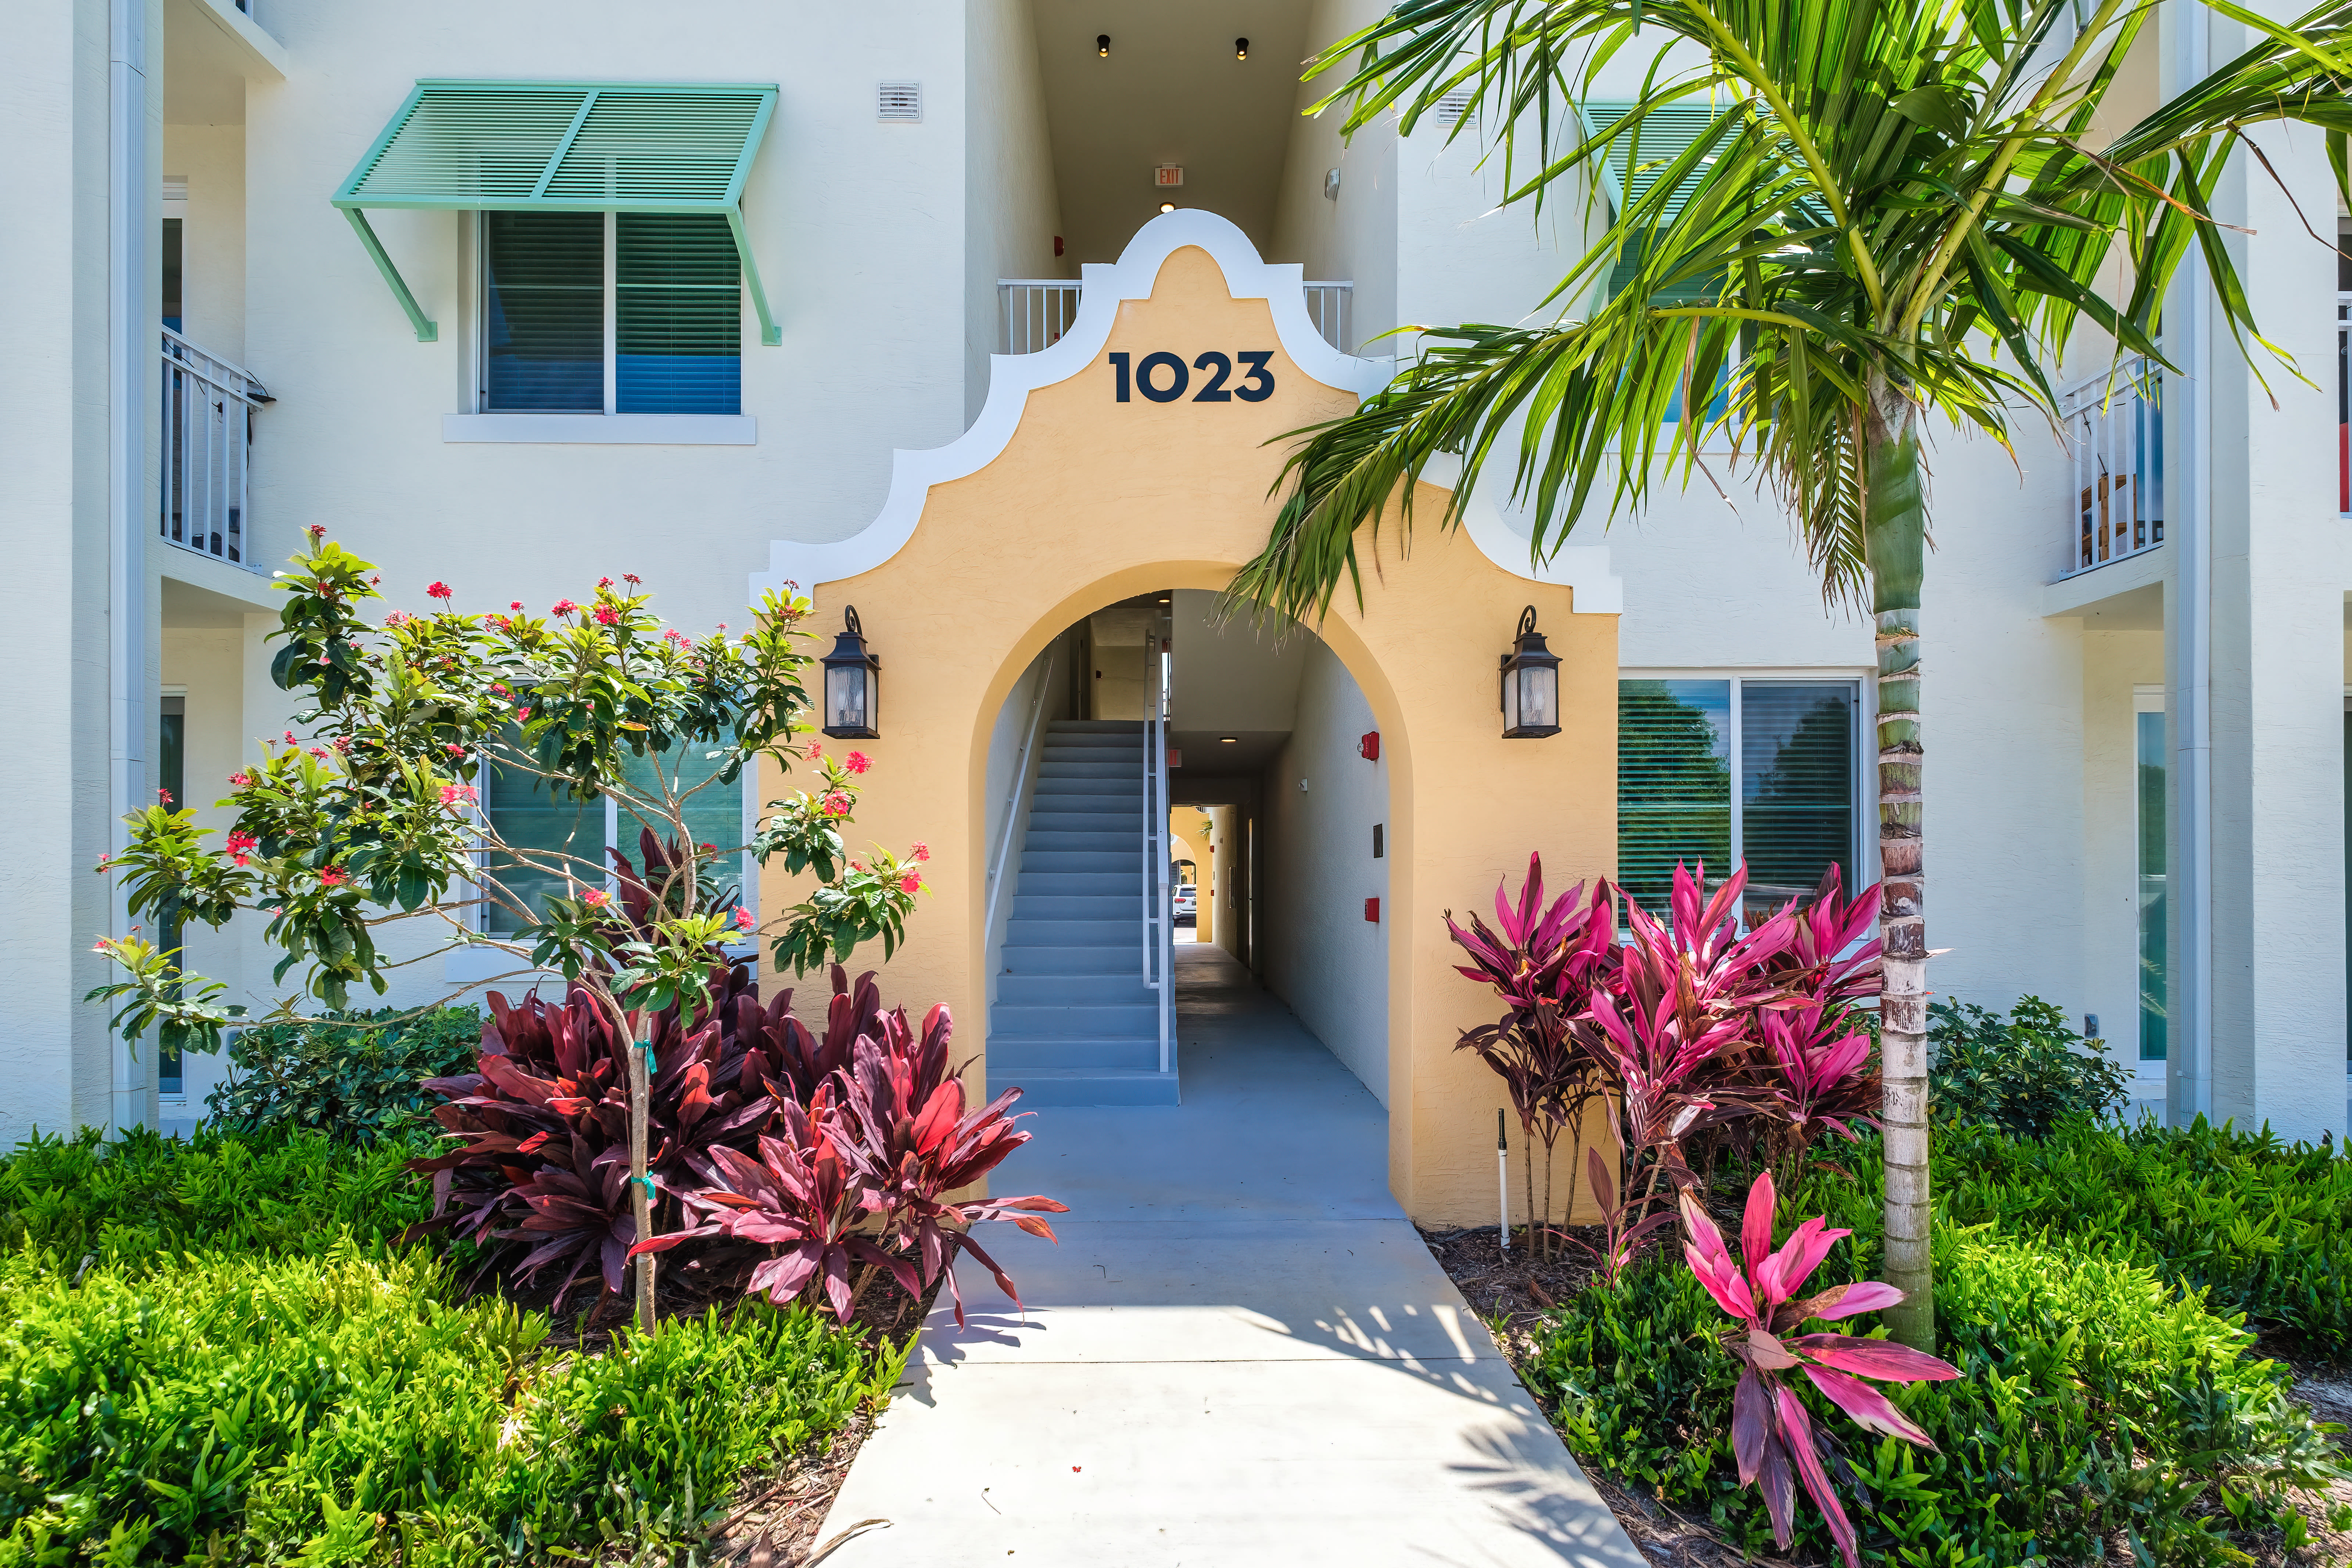 Arched entryway surrounded by lush landscaping at Town Lantana in Lantana, Florida